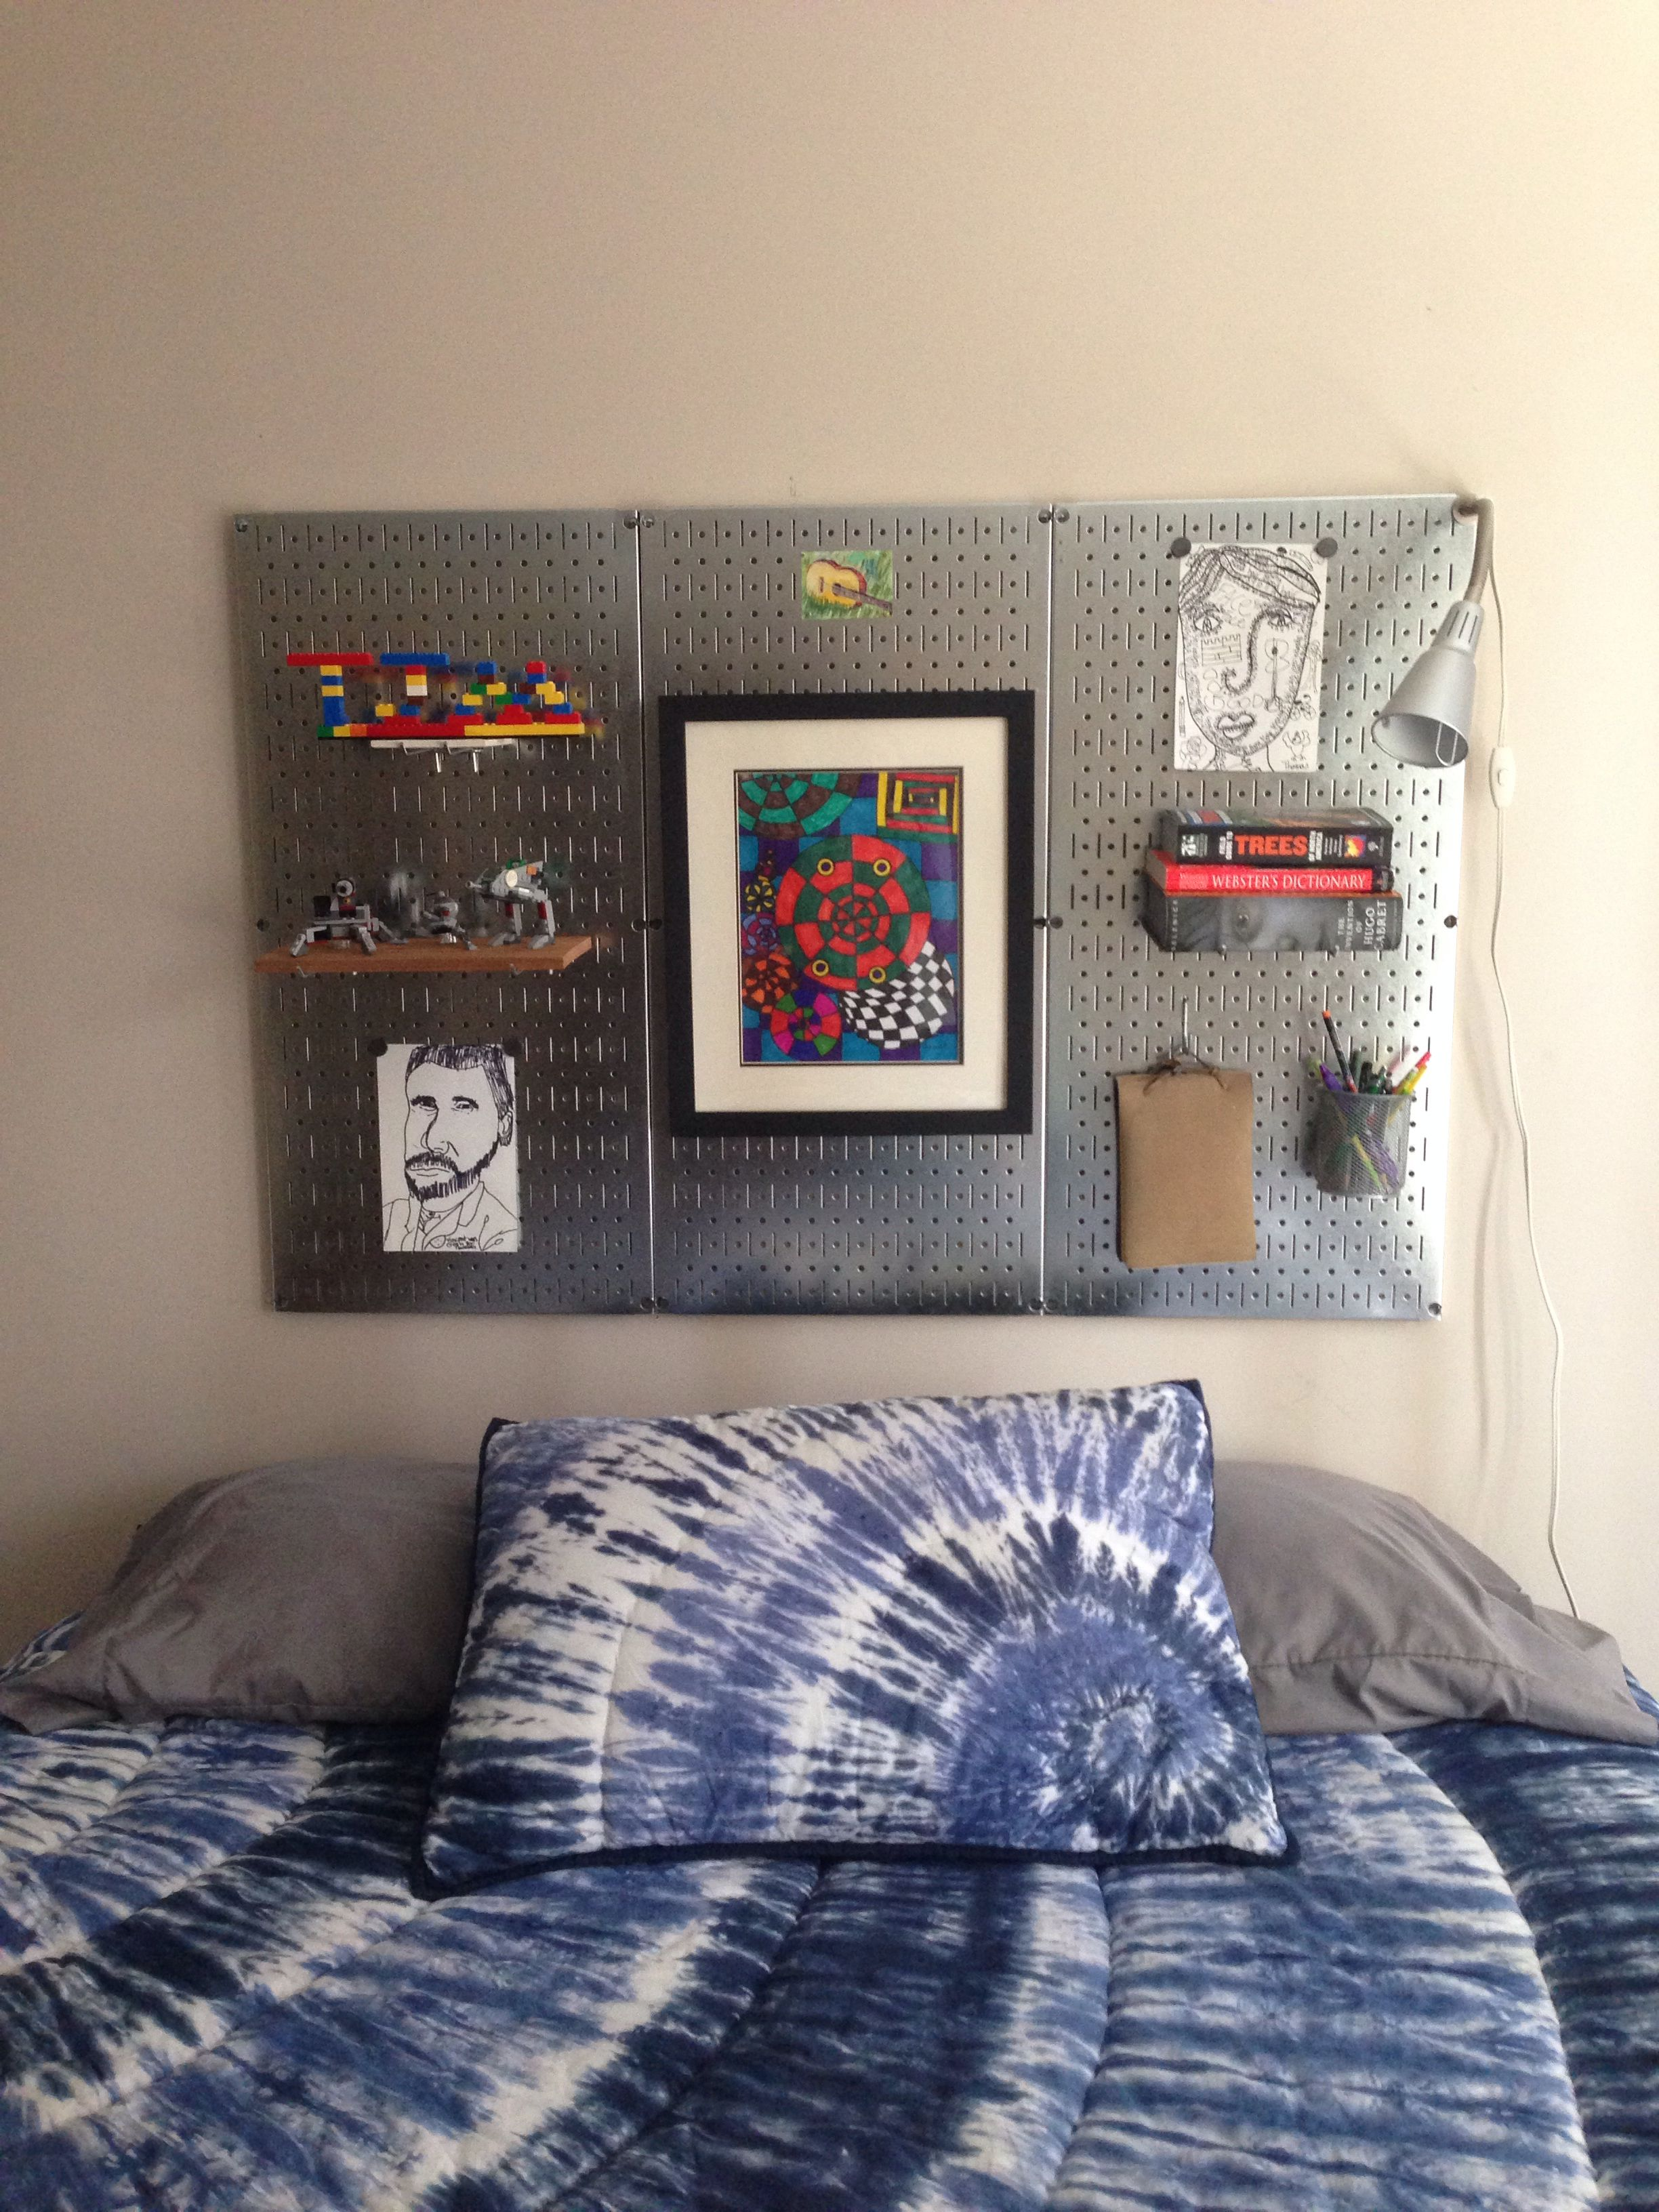 DIY metal pegboard headboard. I am excited about